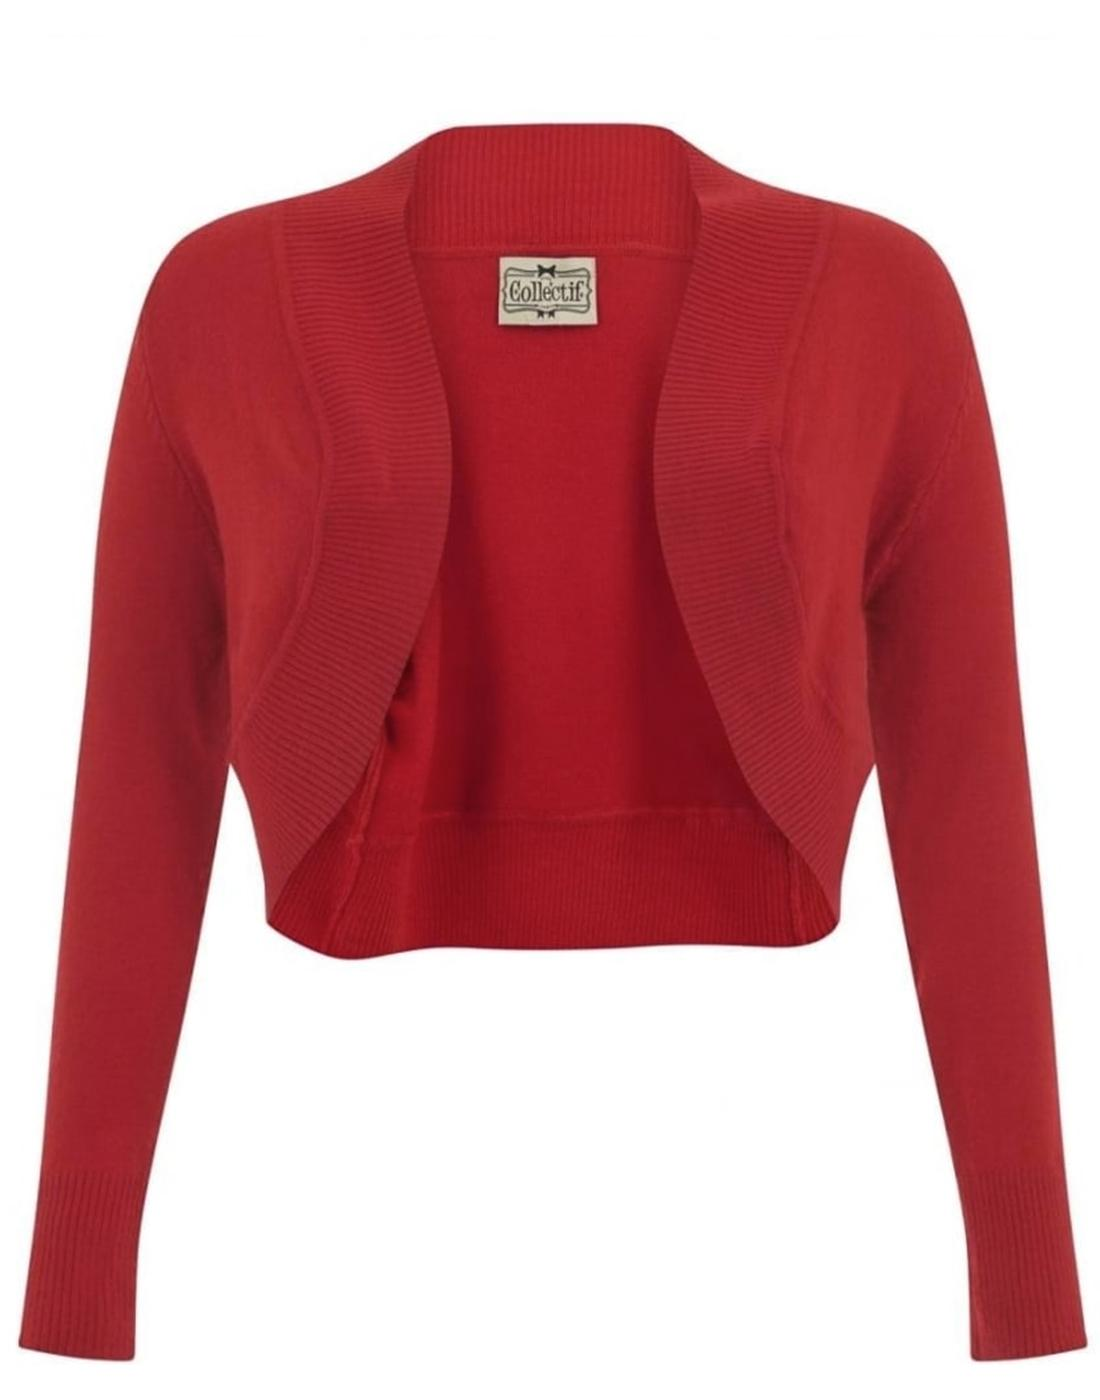 Jean COLLECTIF Vintage 50s Bolero Cardigan Red